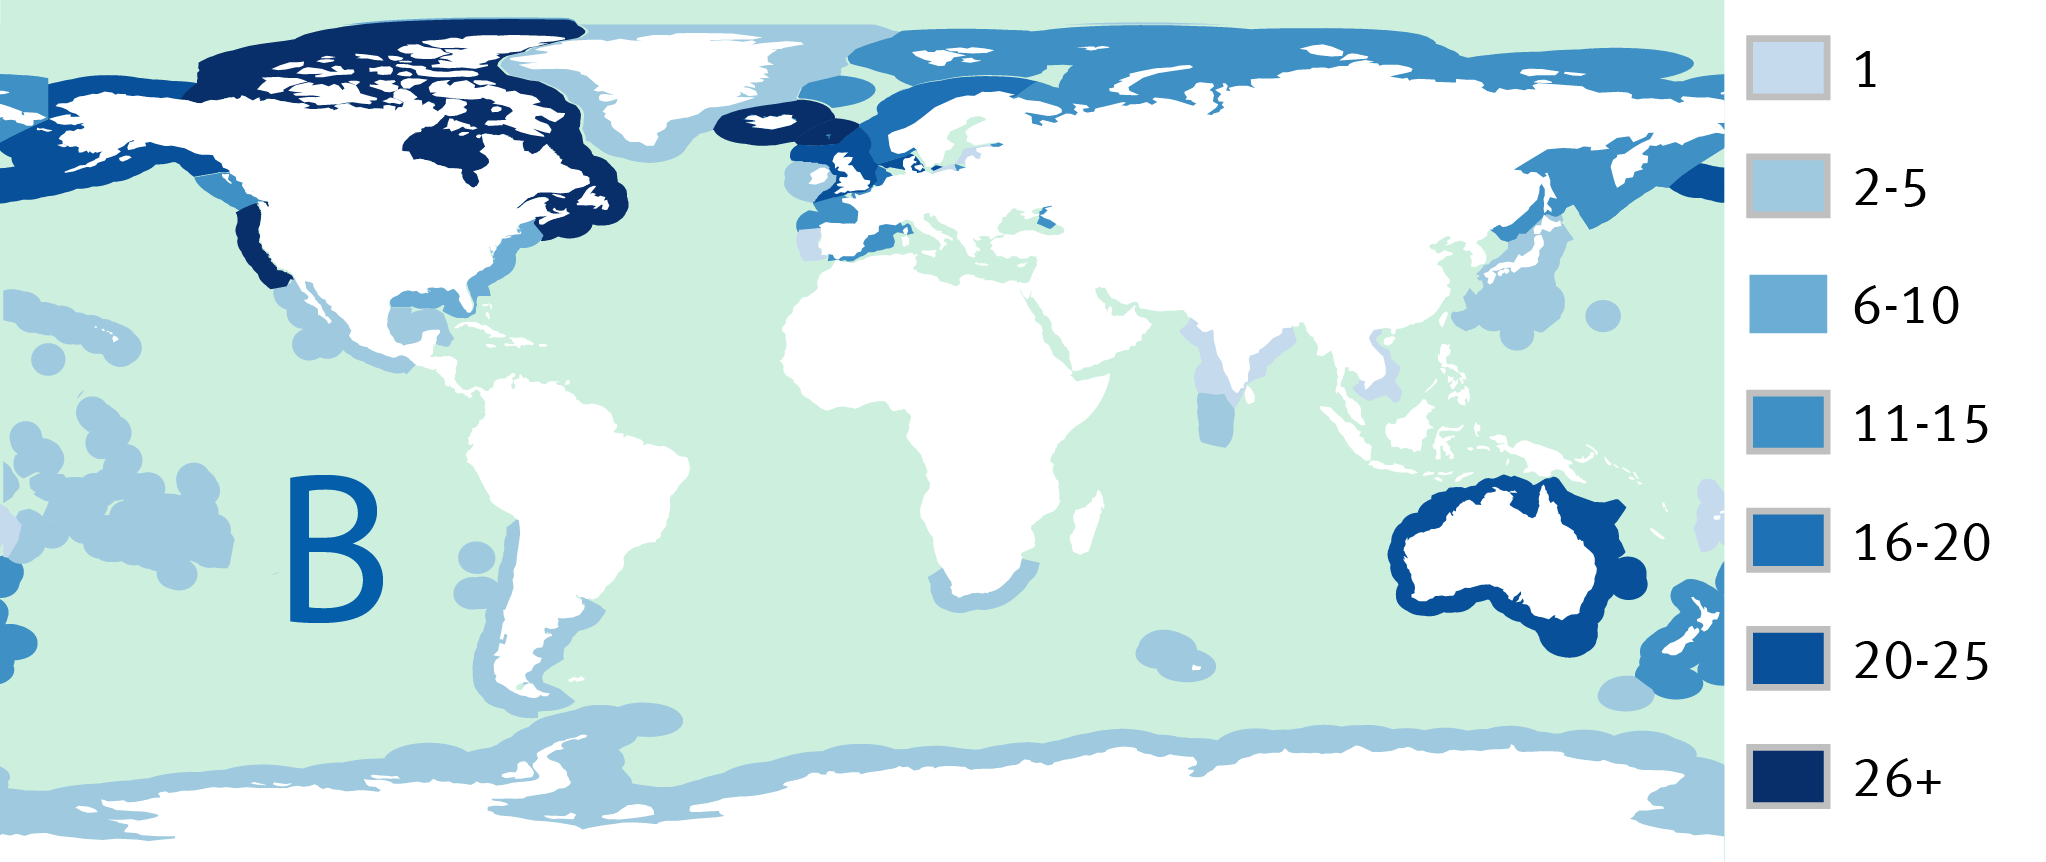 Map B: Number of certified fisheries in each country's EEZ in 2015 (EEZs not shown for countries with no certified fisheries)